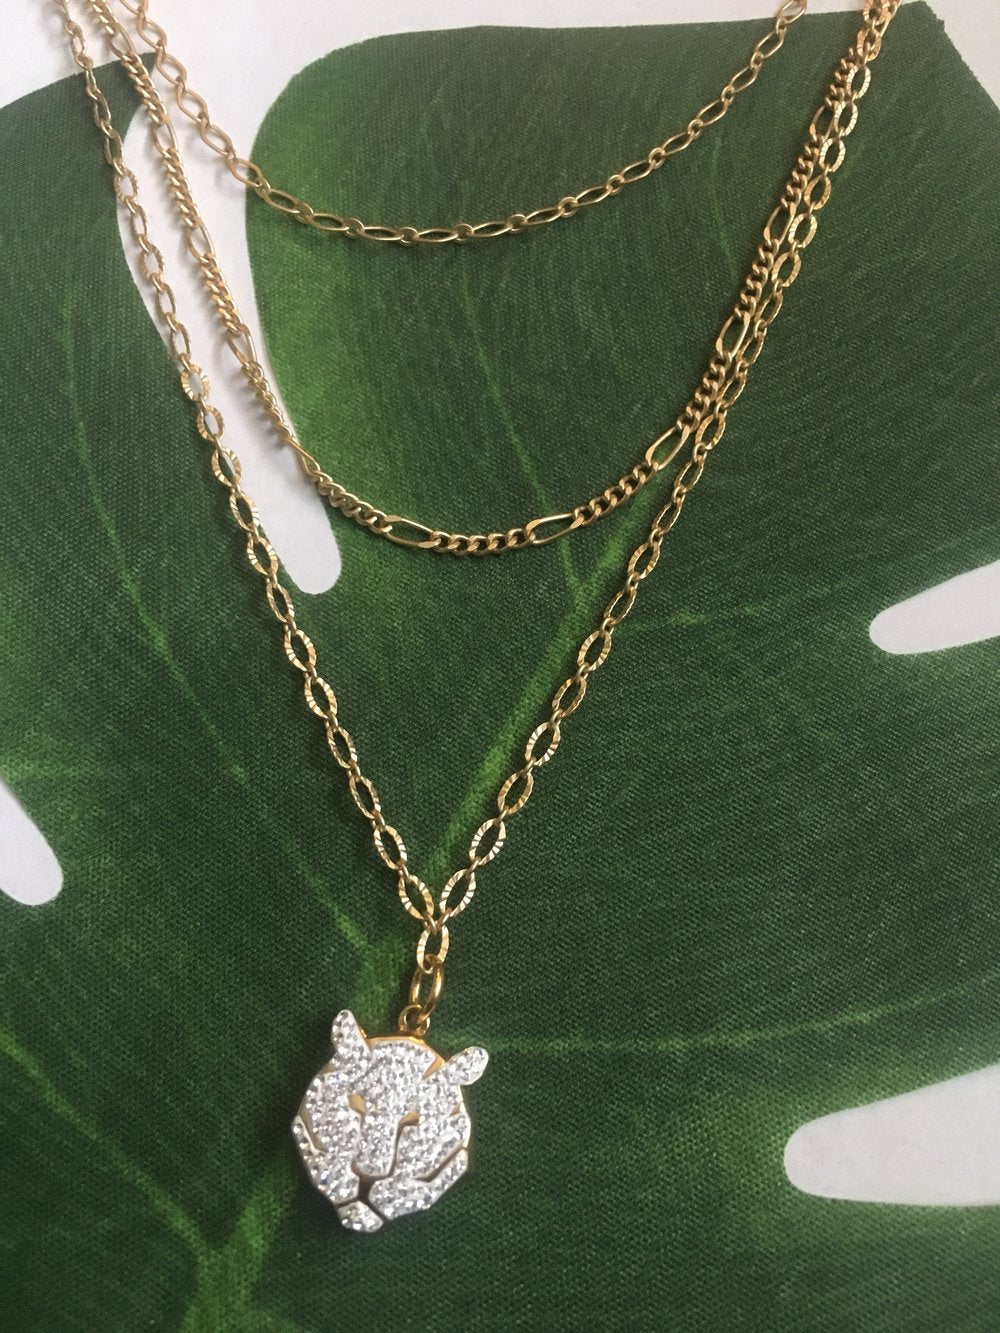 The Ashley Tiger Necklace